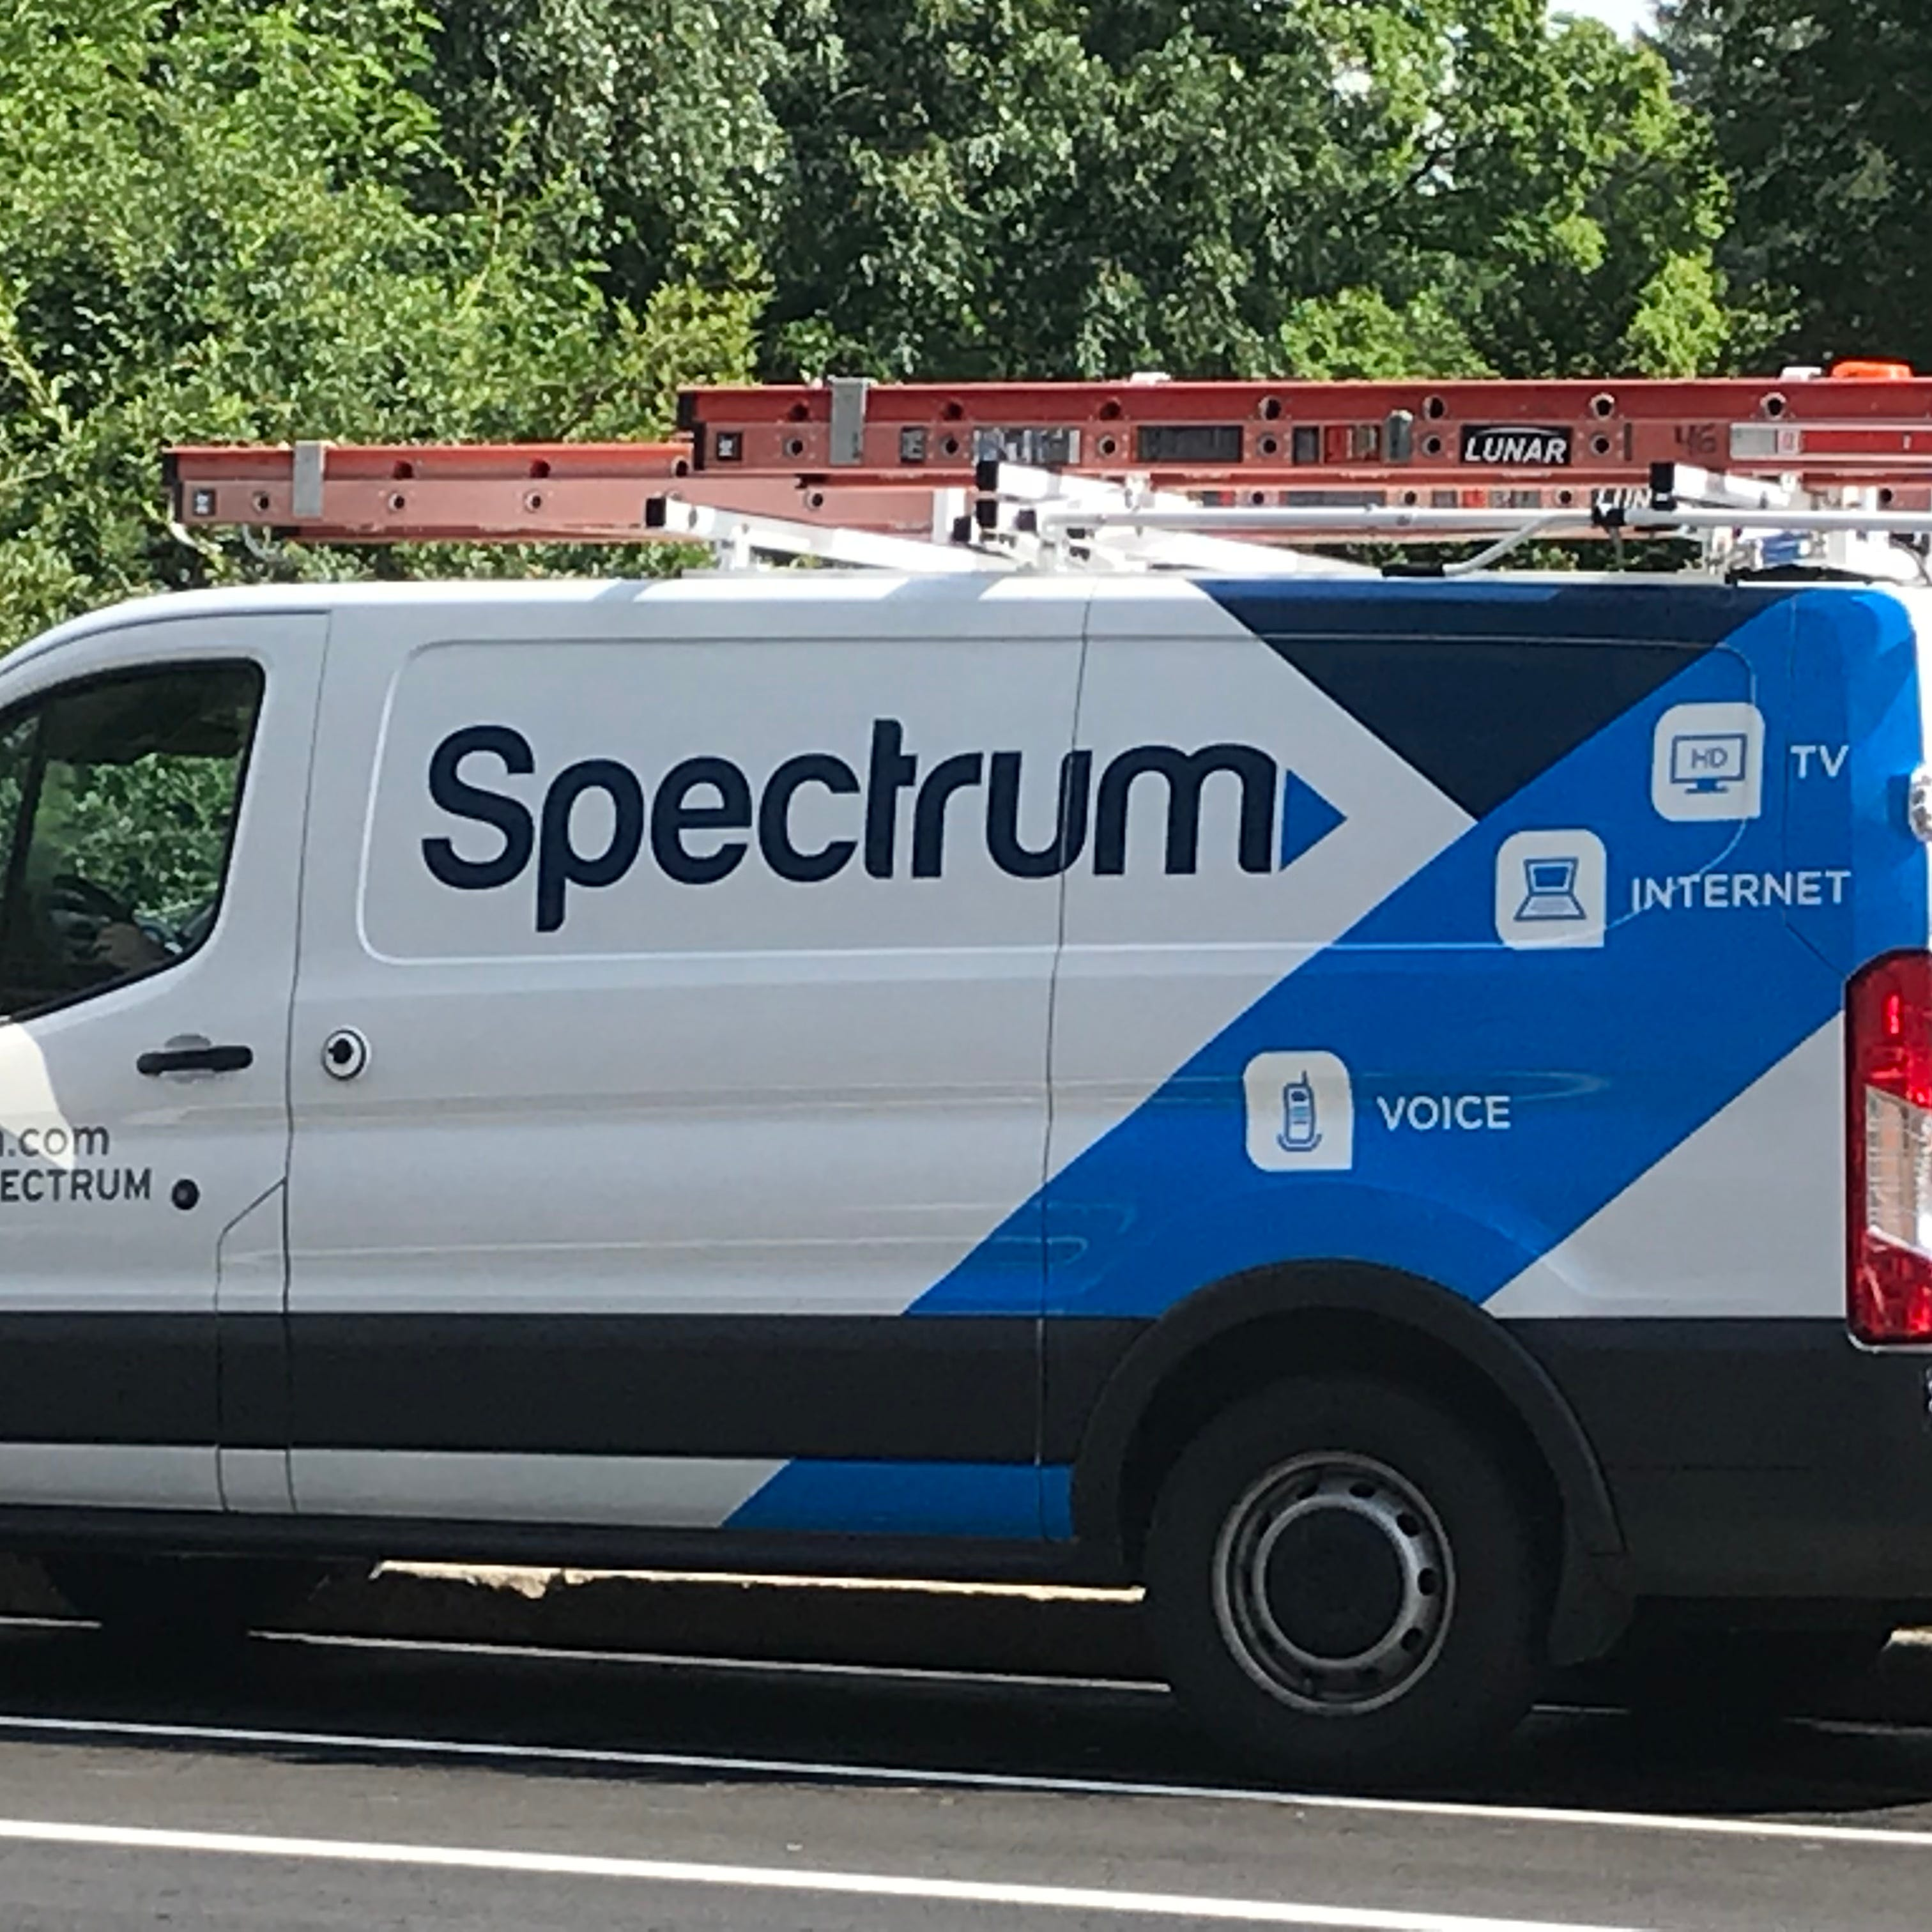 Spectrum to increase cable costs next month